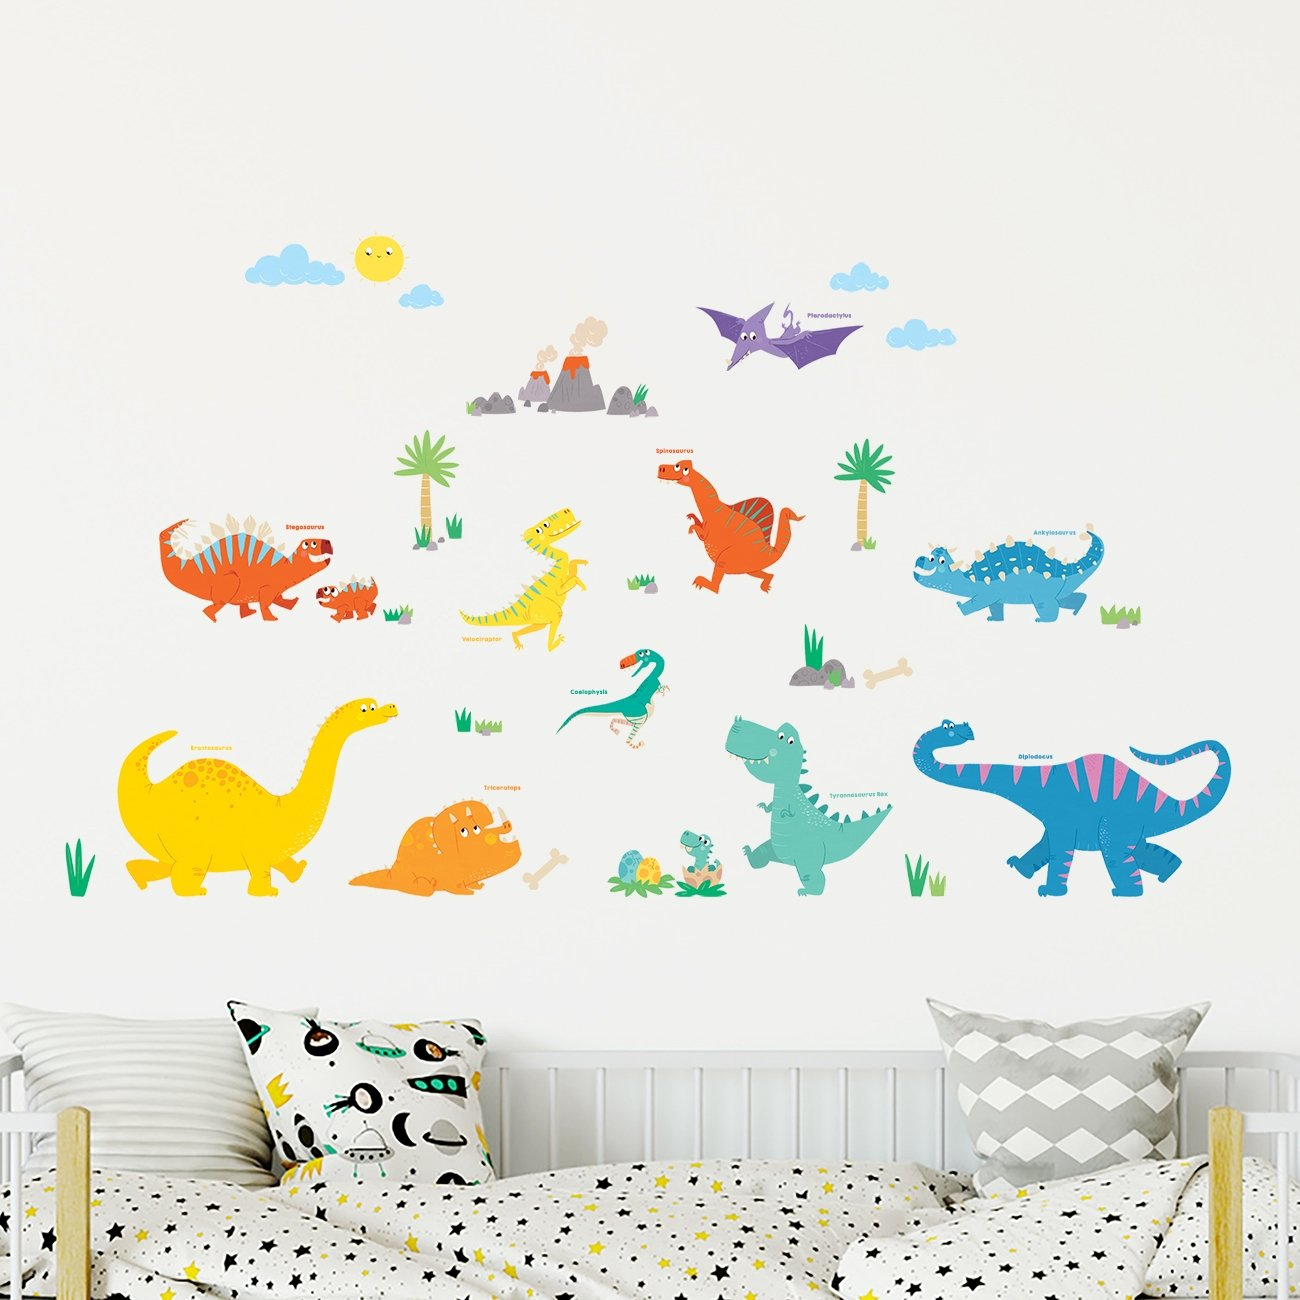 Decowall DS-8019 Dinosaurs Kids Wall Stickers Wall Decals Peel and Stick Removable Wall Stickers for Kids Nursery Bedroom Living Room Small